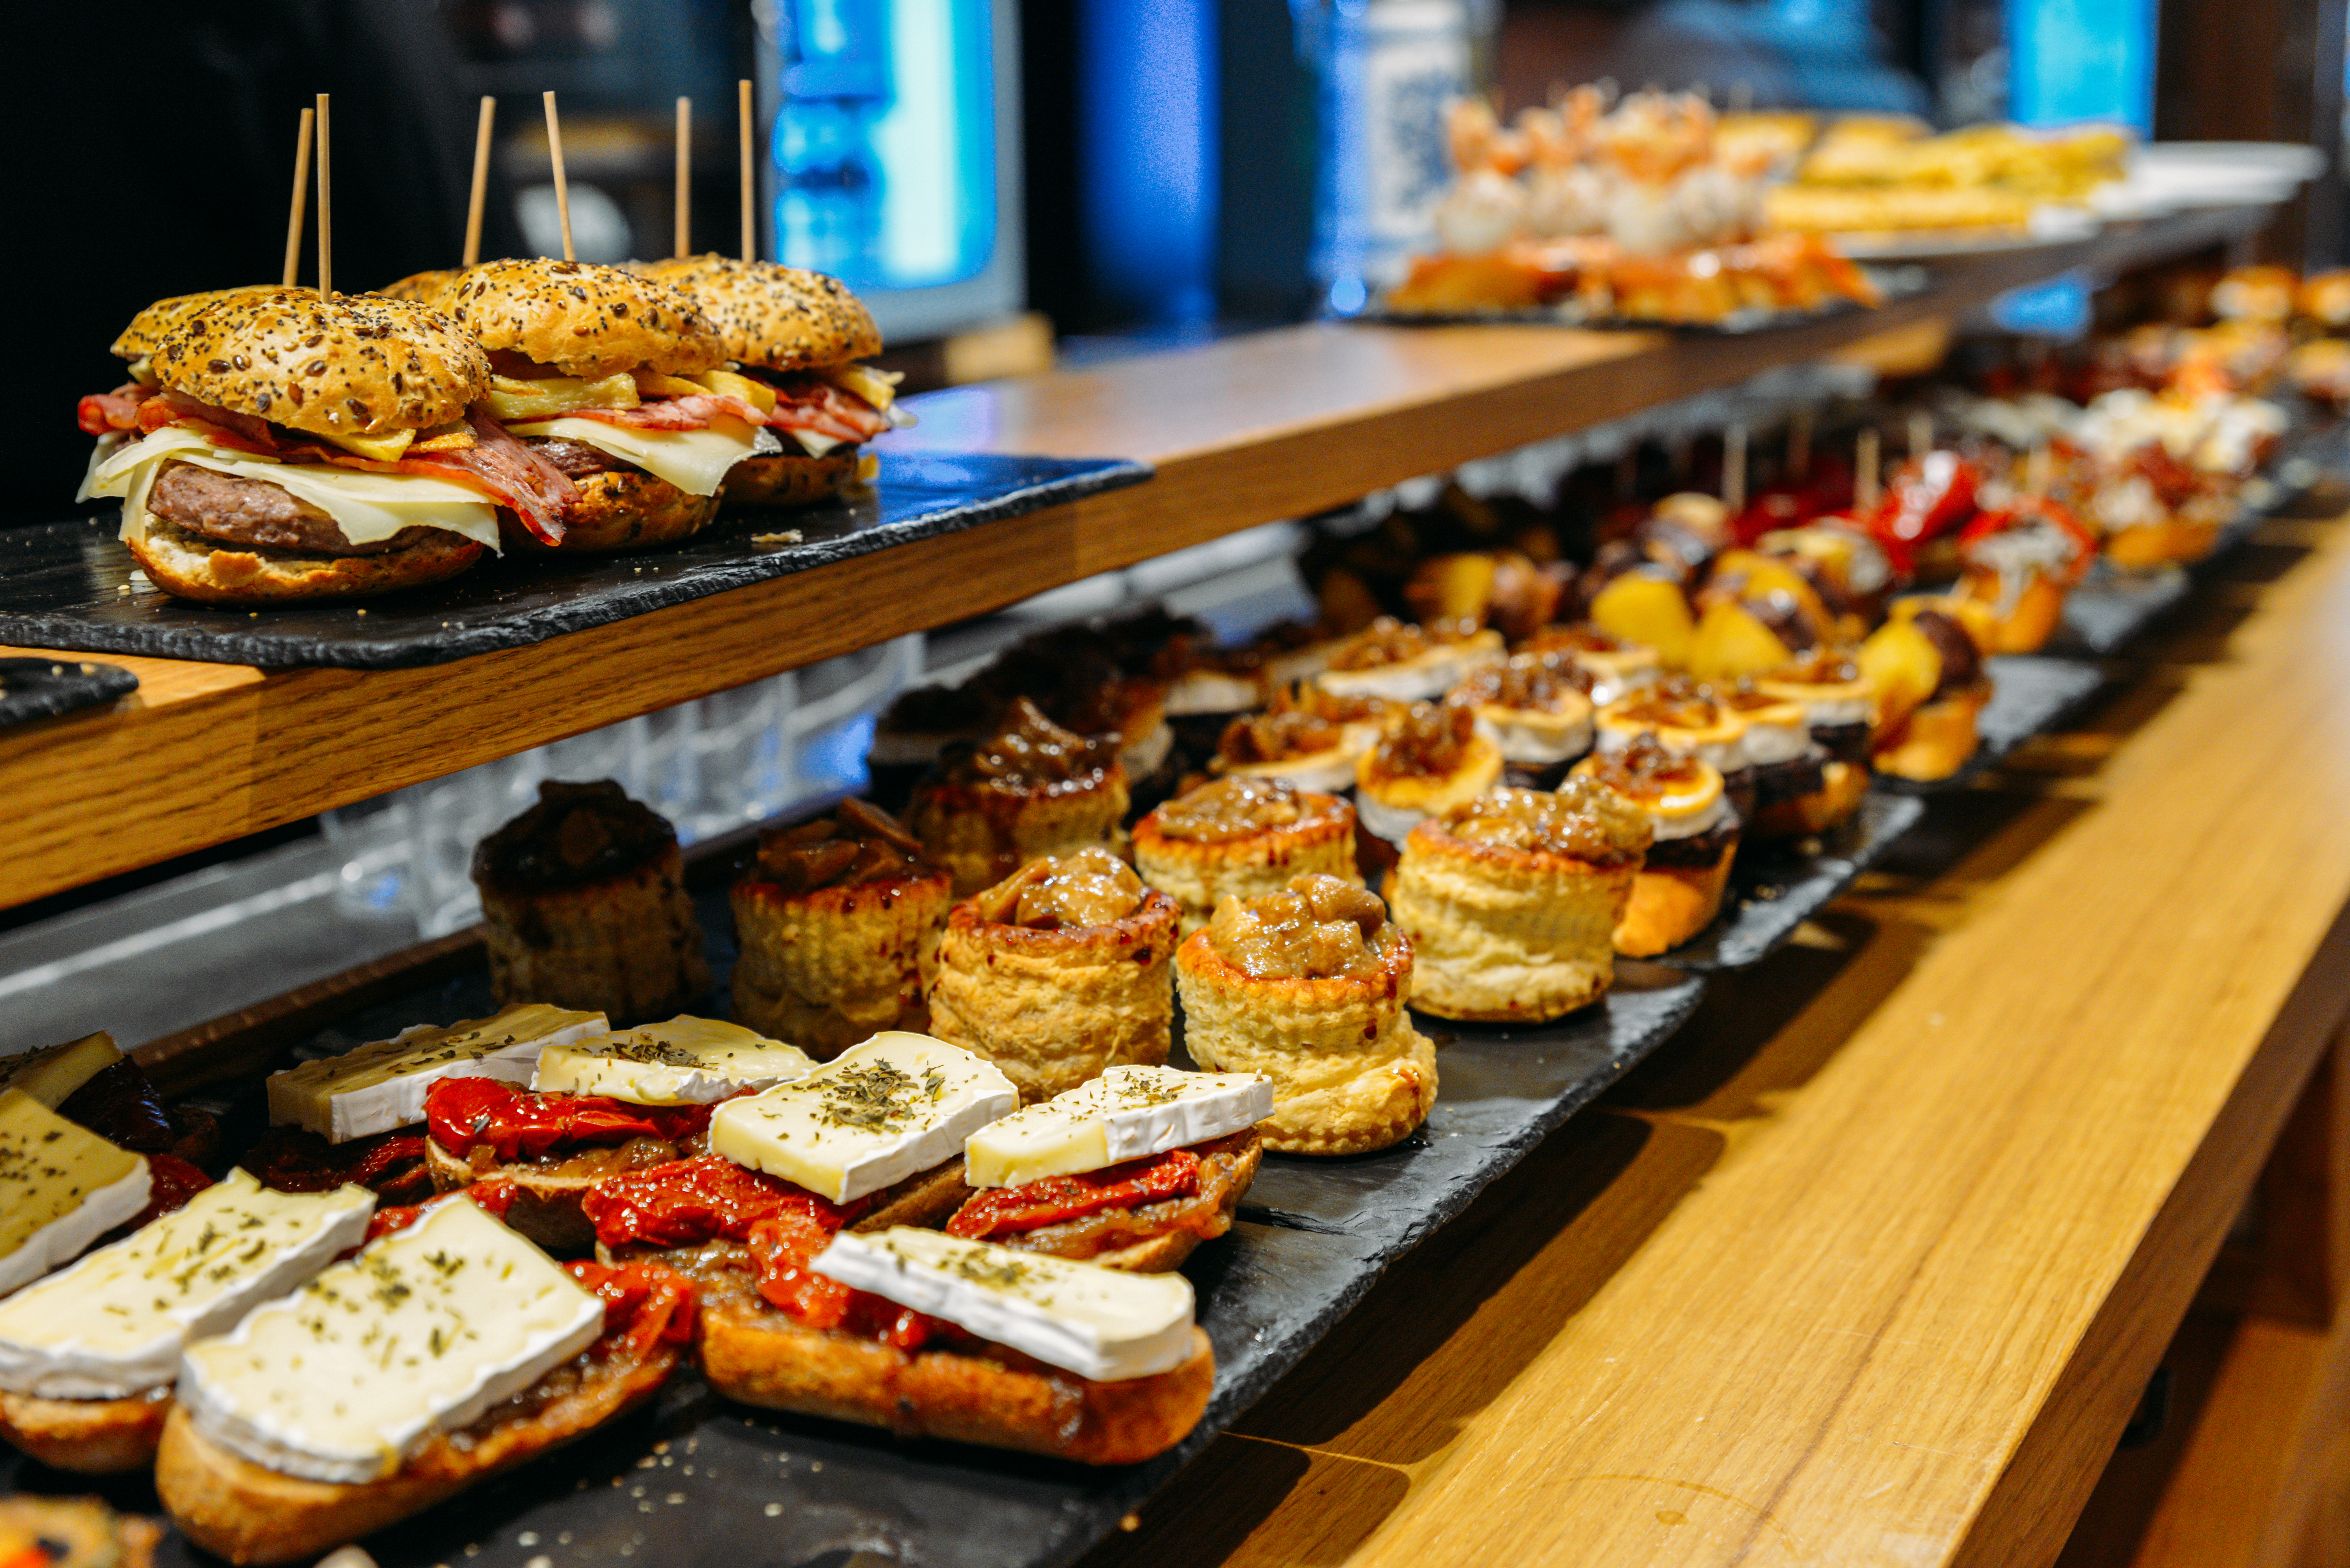 Pintxos piled on slate trays atop a wooden table